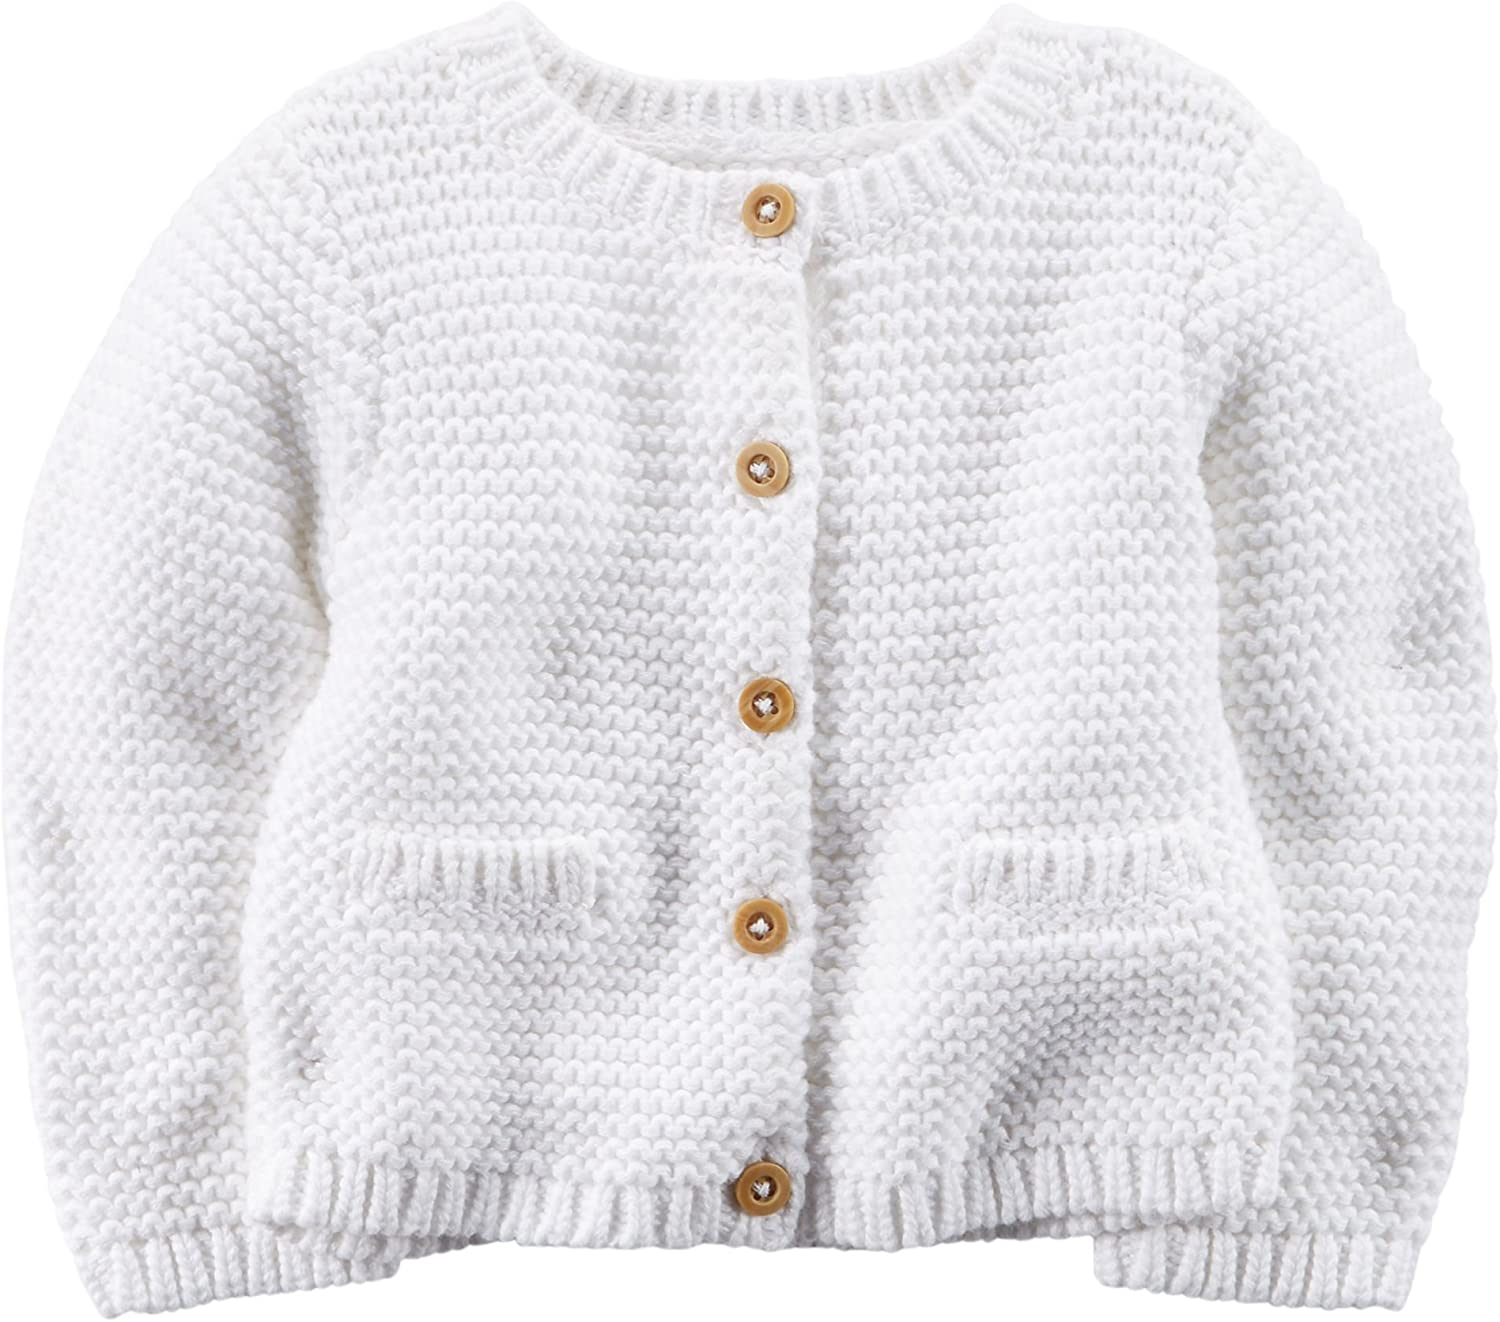 Carters White Sweater babies 3 months old